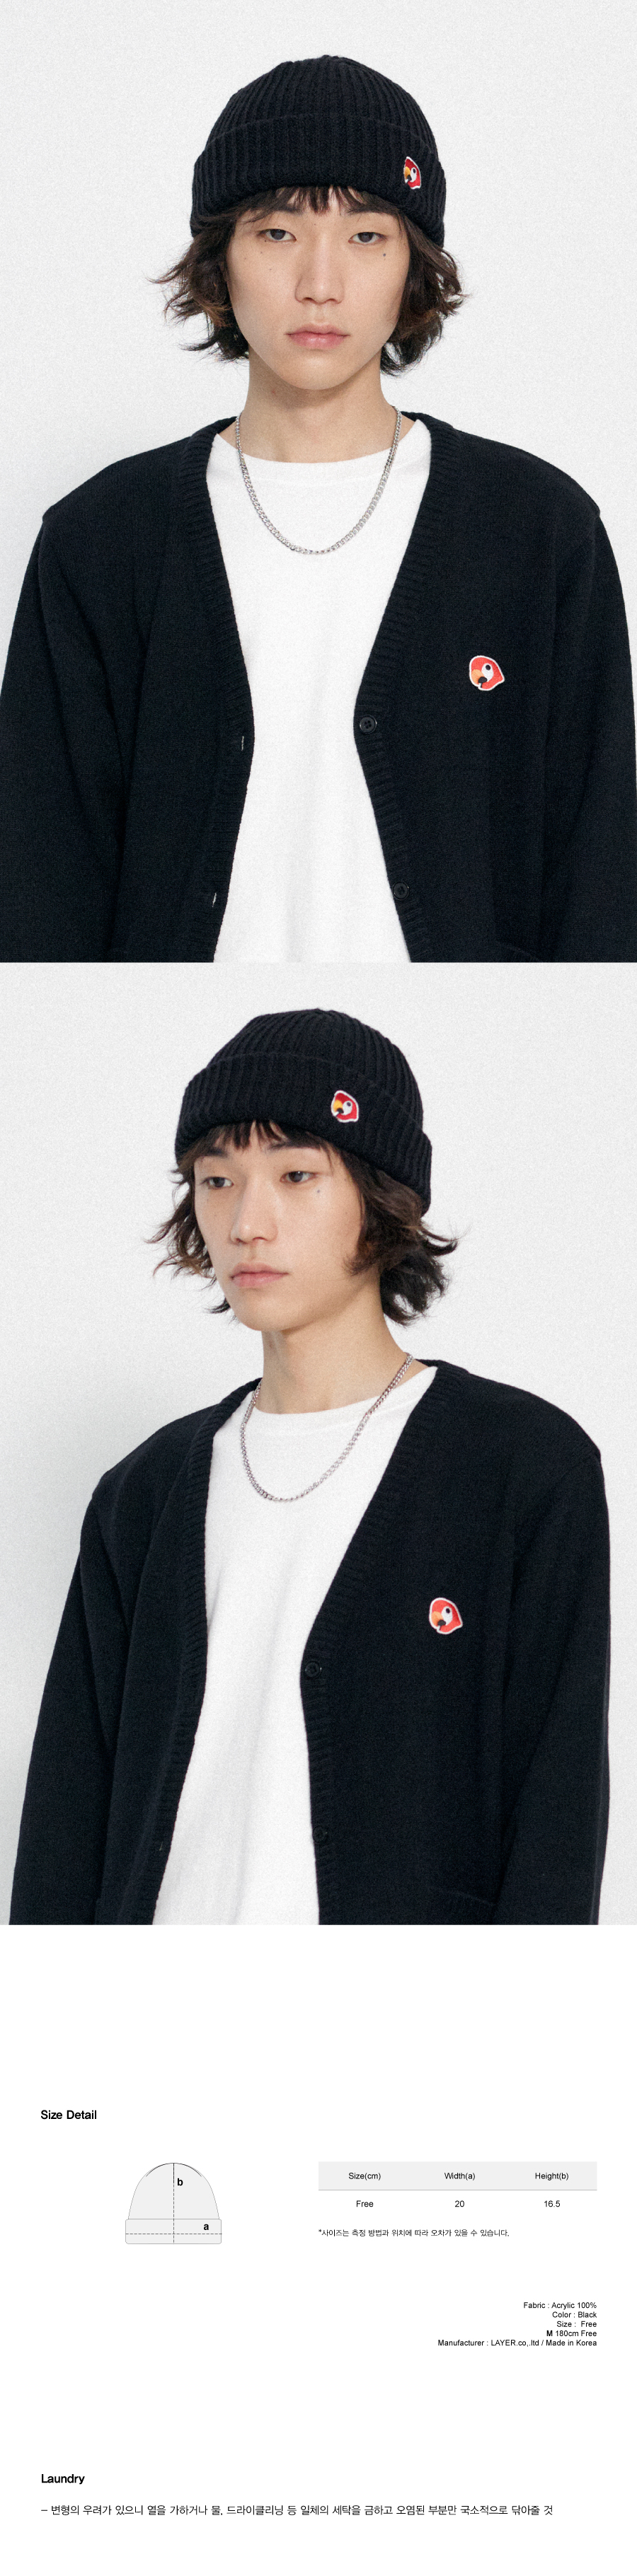 칸코(KANCO) KANCO LOGO SHORT BEANIE black